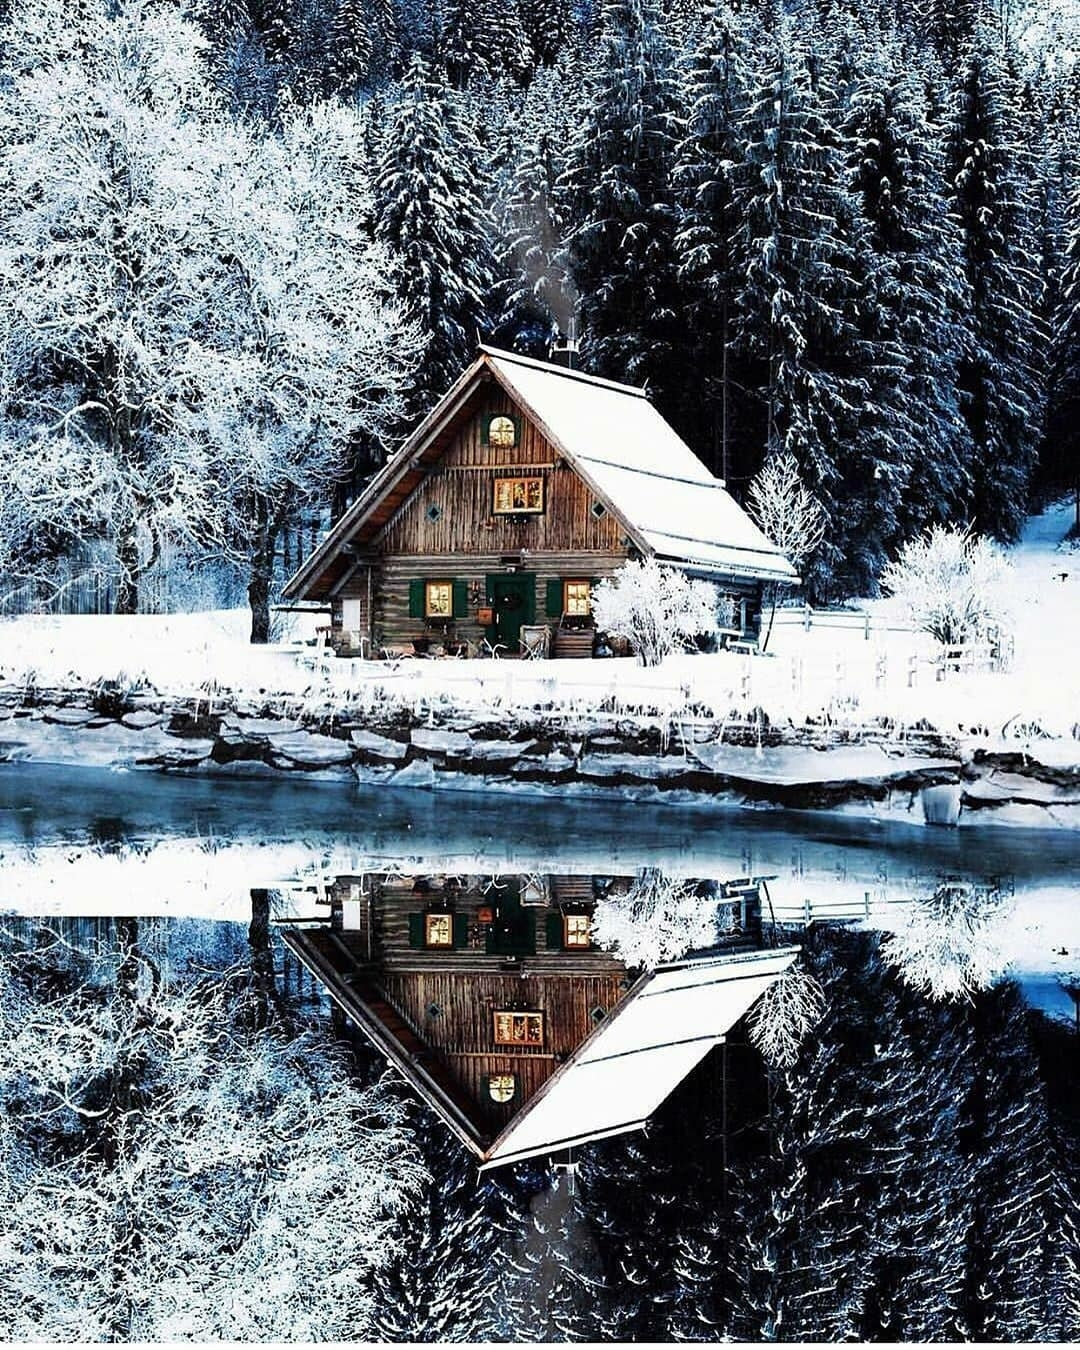 snow cabin lake reflection